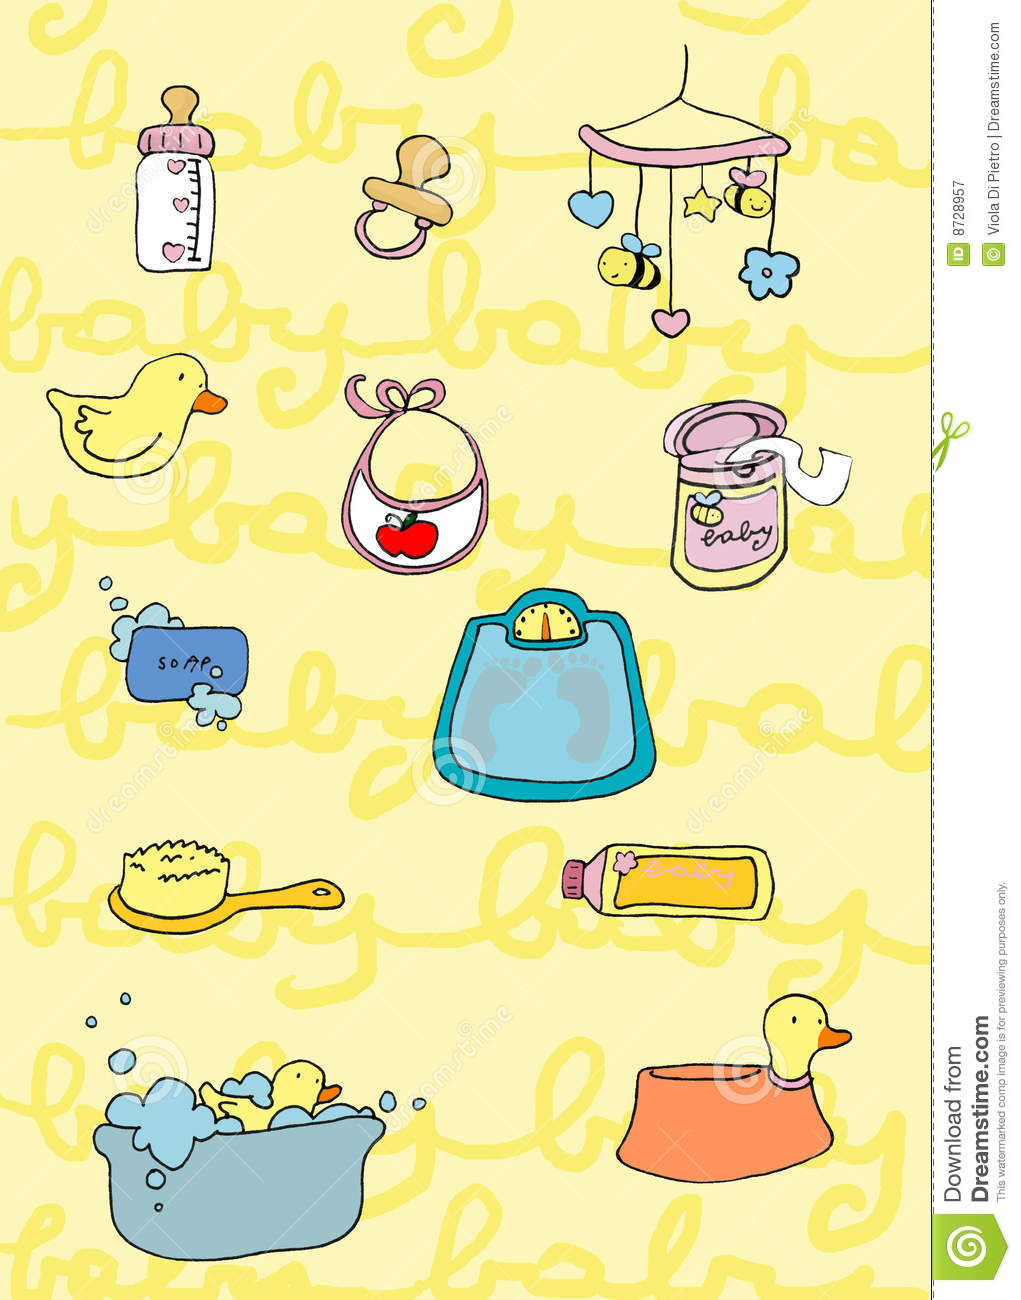 Baby's Things Royalty Free Stock Photography - Image: 8728957